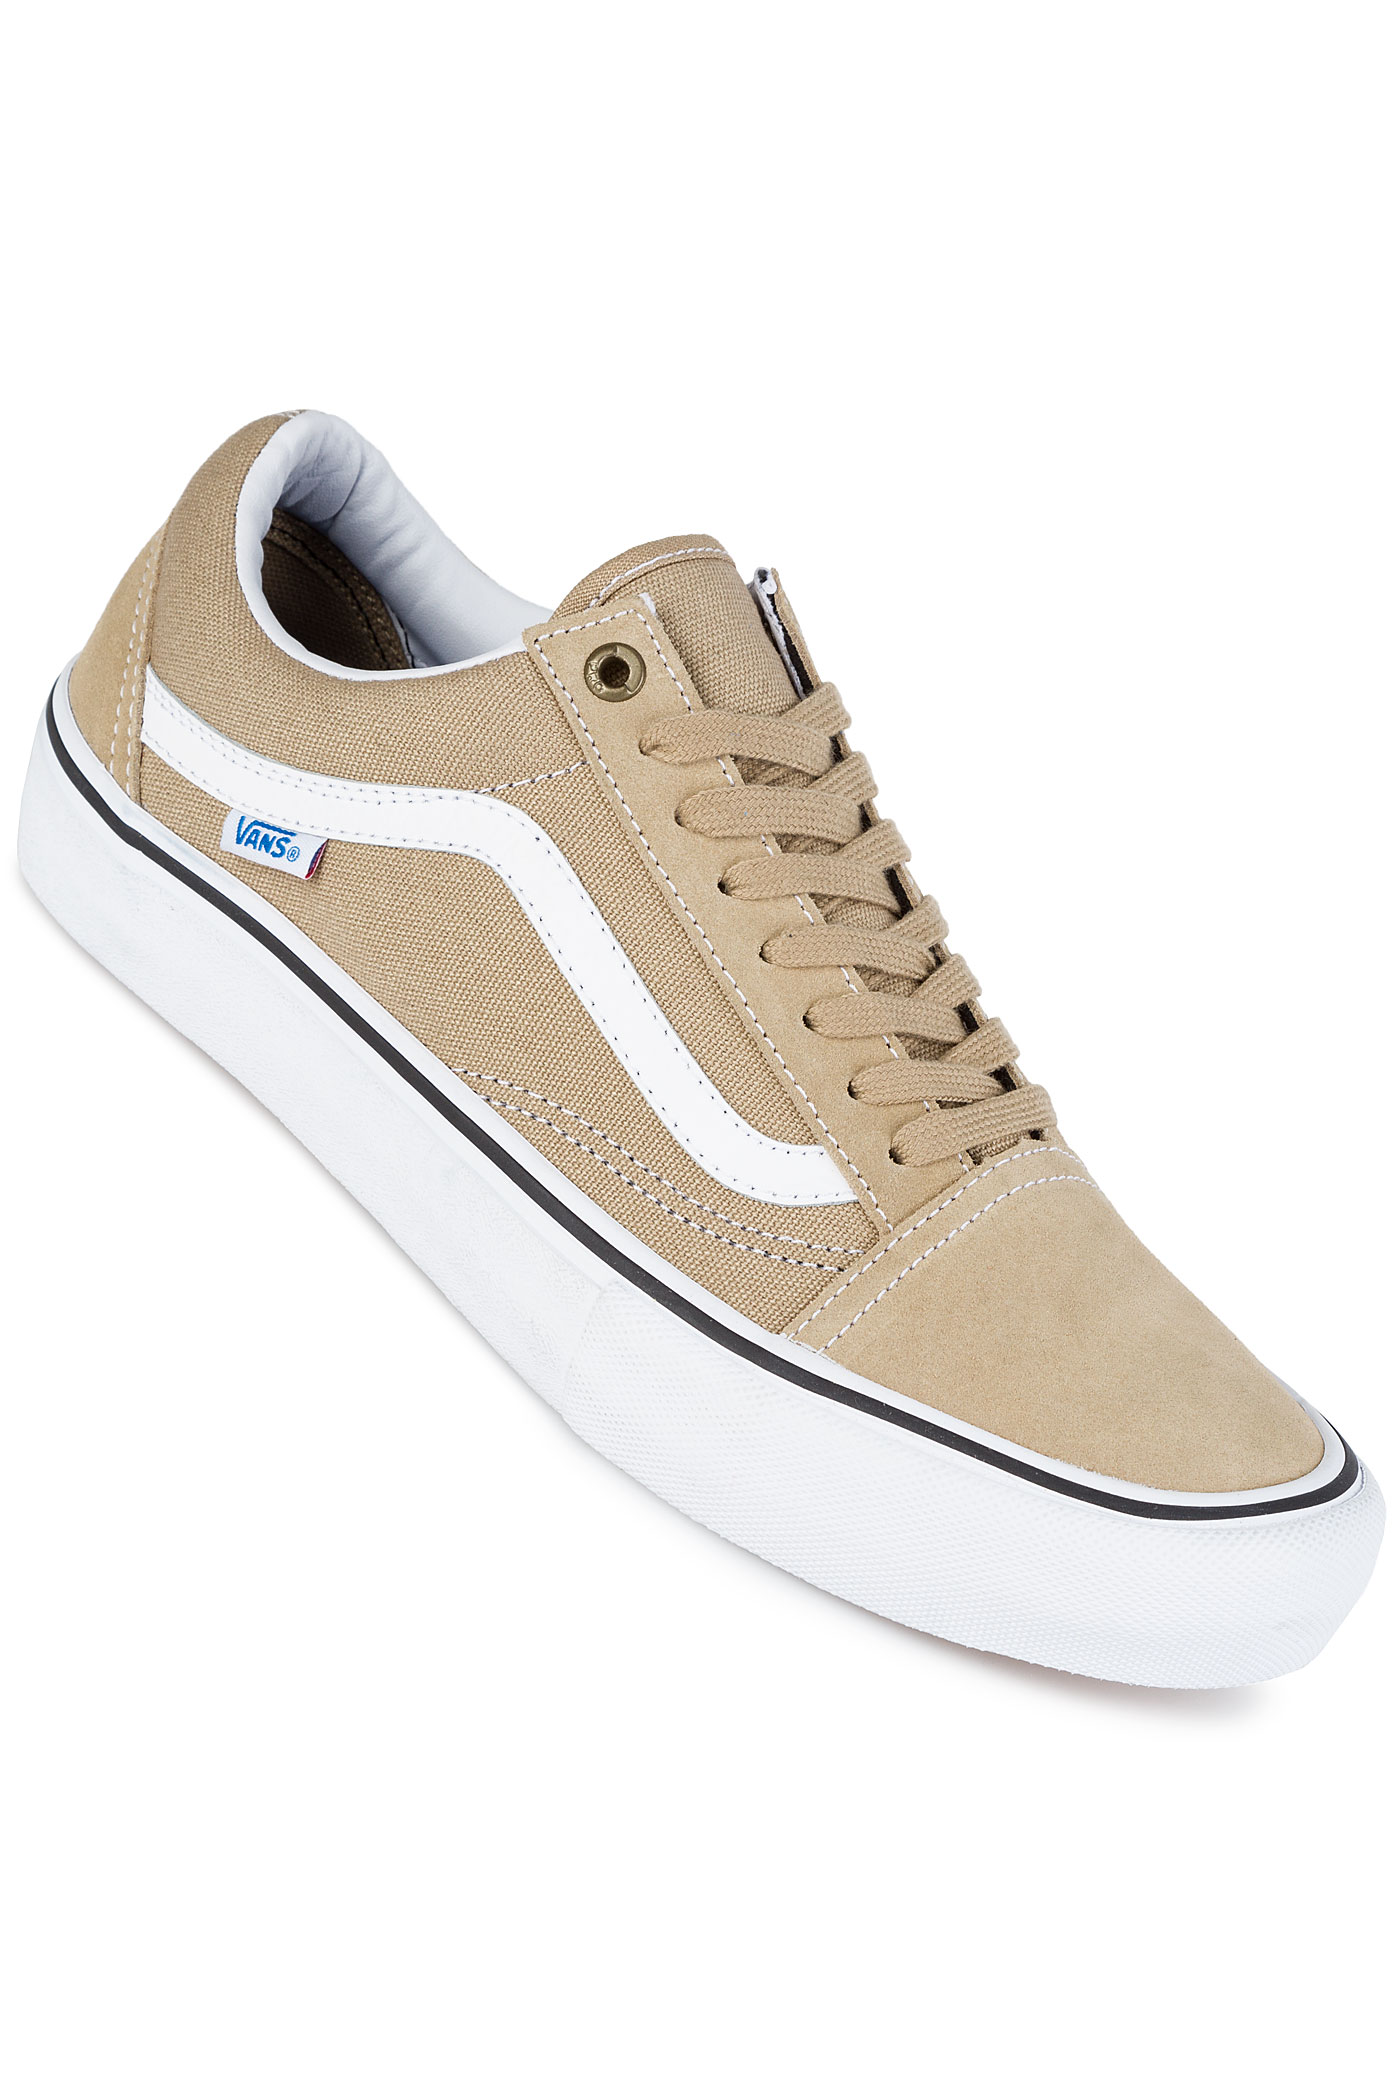 vans old skool pro schuh khaki white kaufen bei skatedeluxe. Black Bedroom Furniture Sets. Home Design Ideas